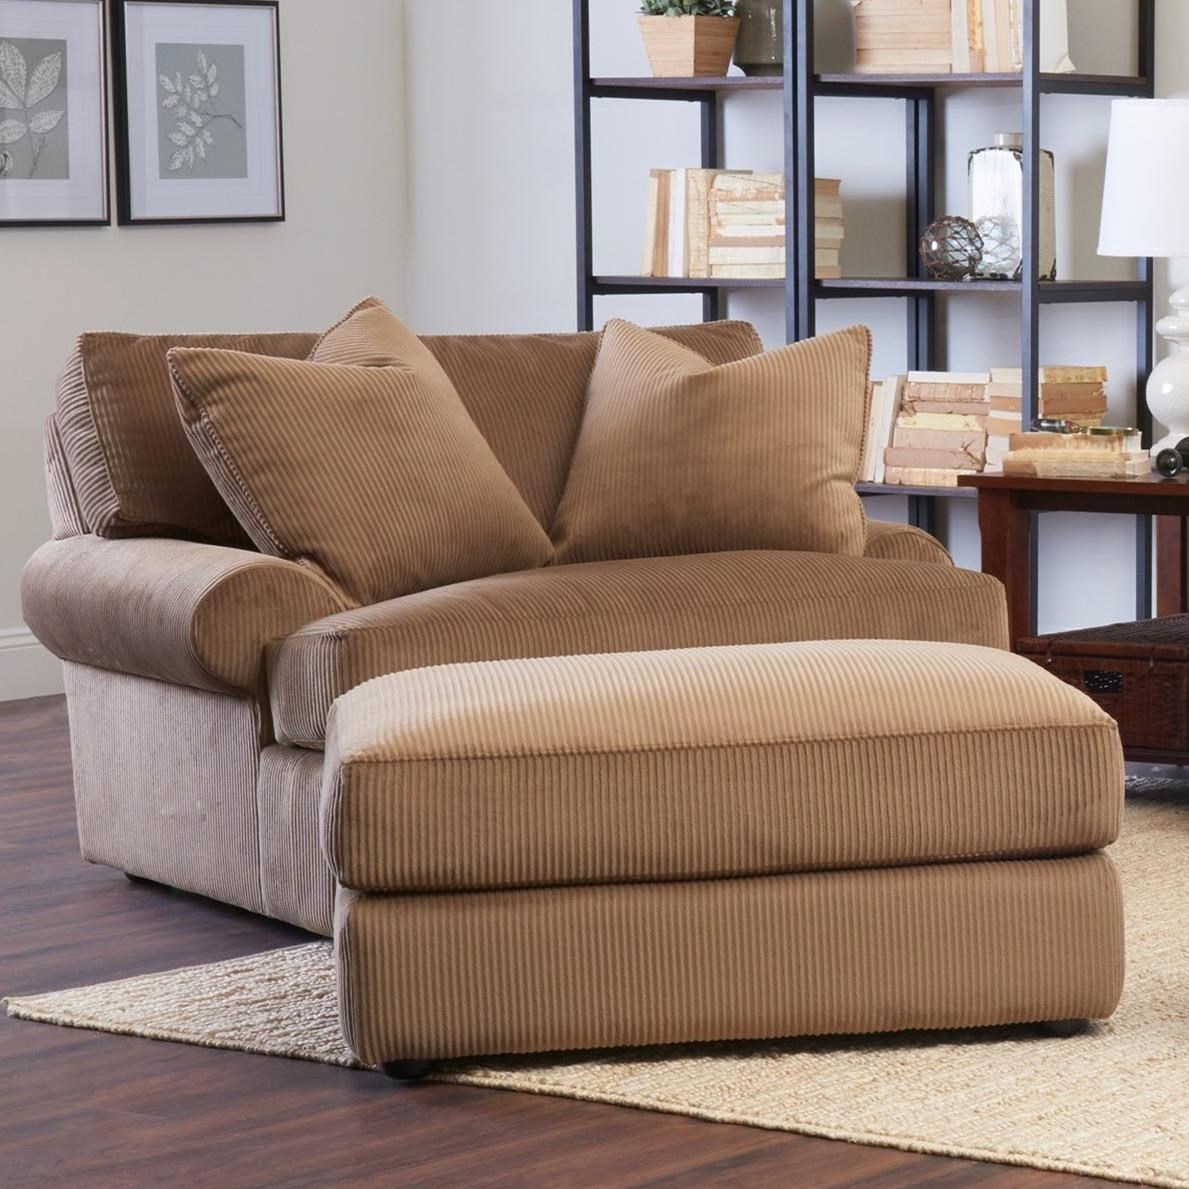 Oversized Chair And Ottoman Set Klaussner Adelyn Oversized Chair And Ottoman Set Hudson S